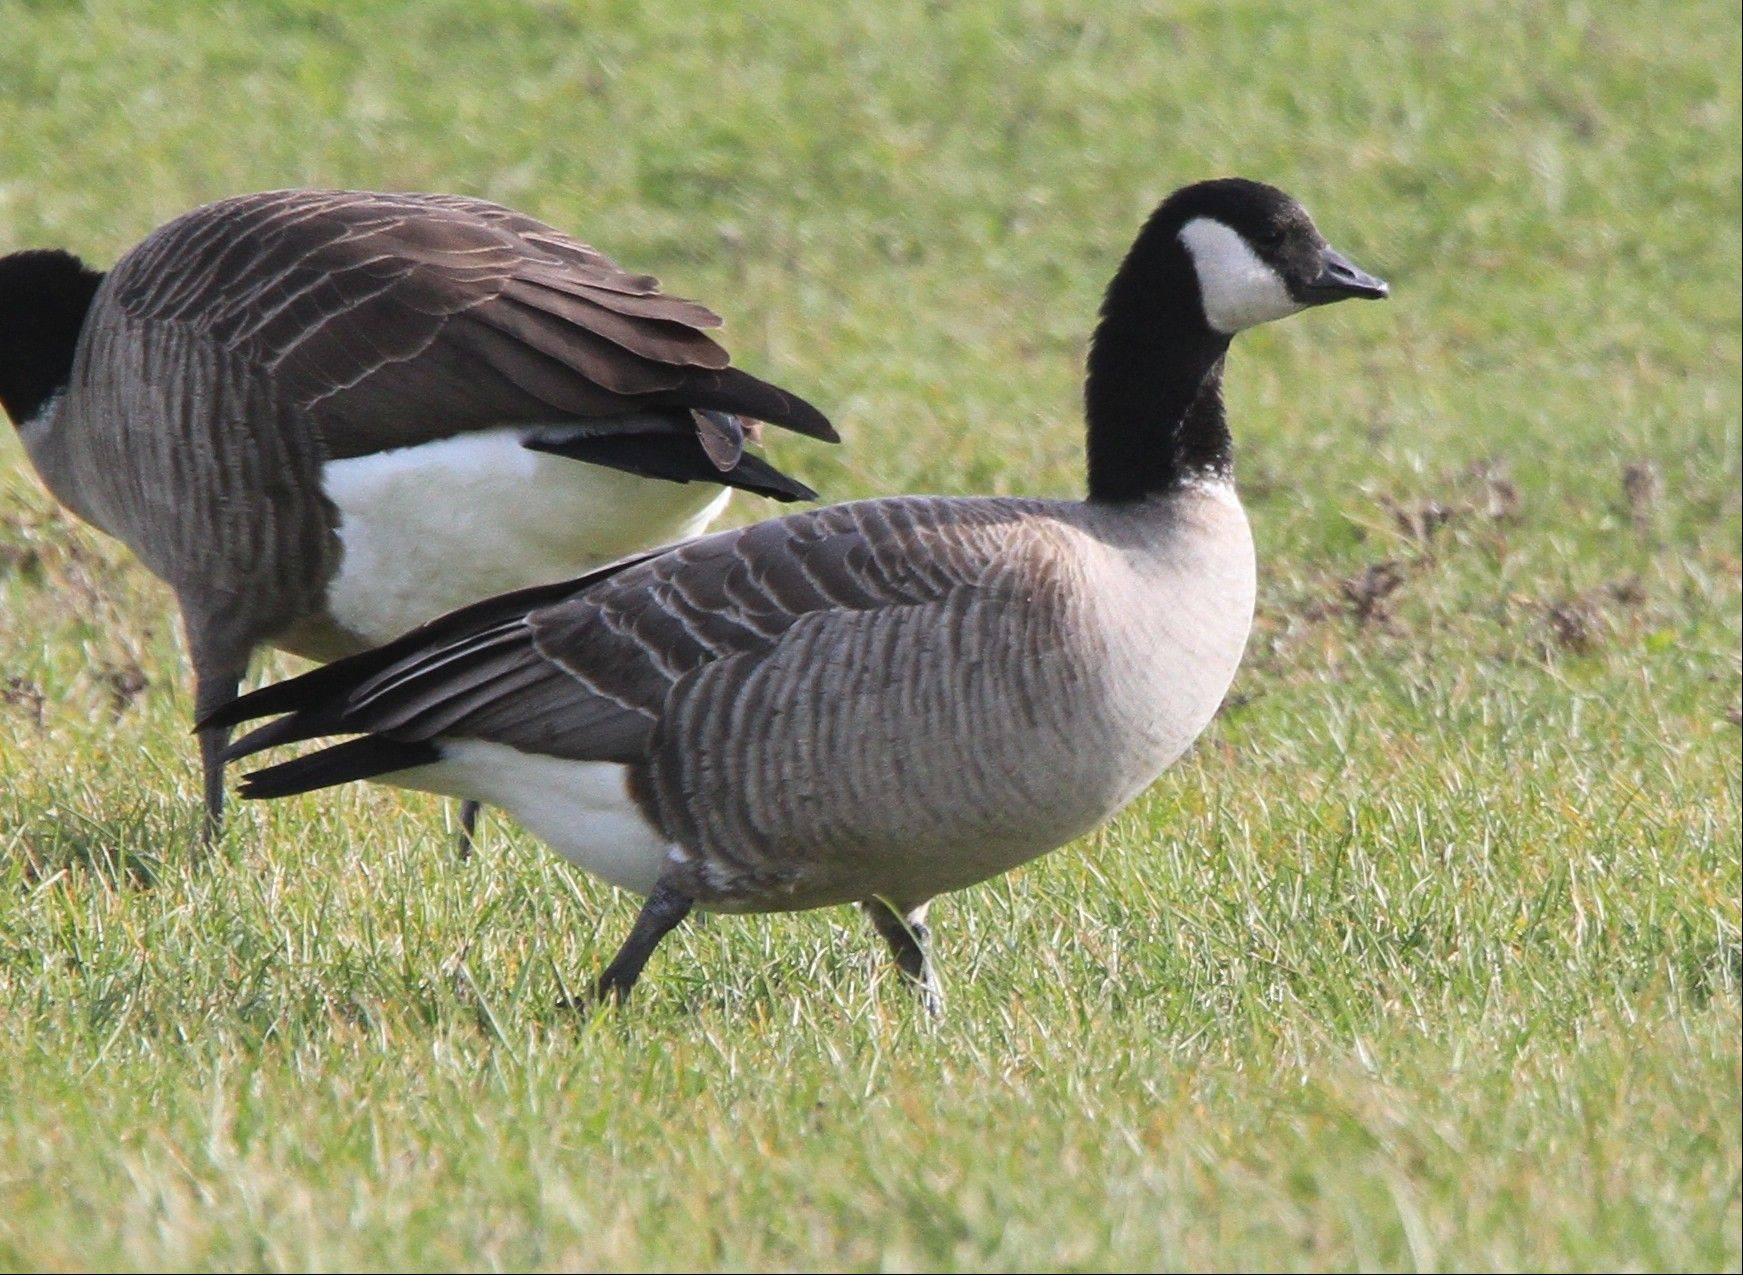 Cackling geese often go undetected when mingling with hundreds of Canada geese. They are a separate species and much smaller than Canadas.